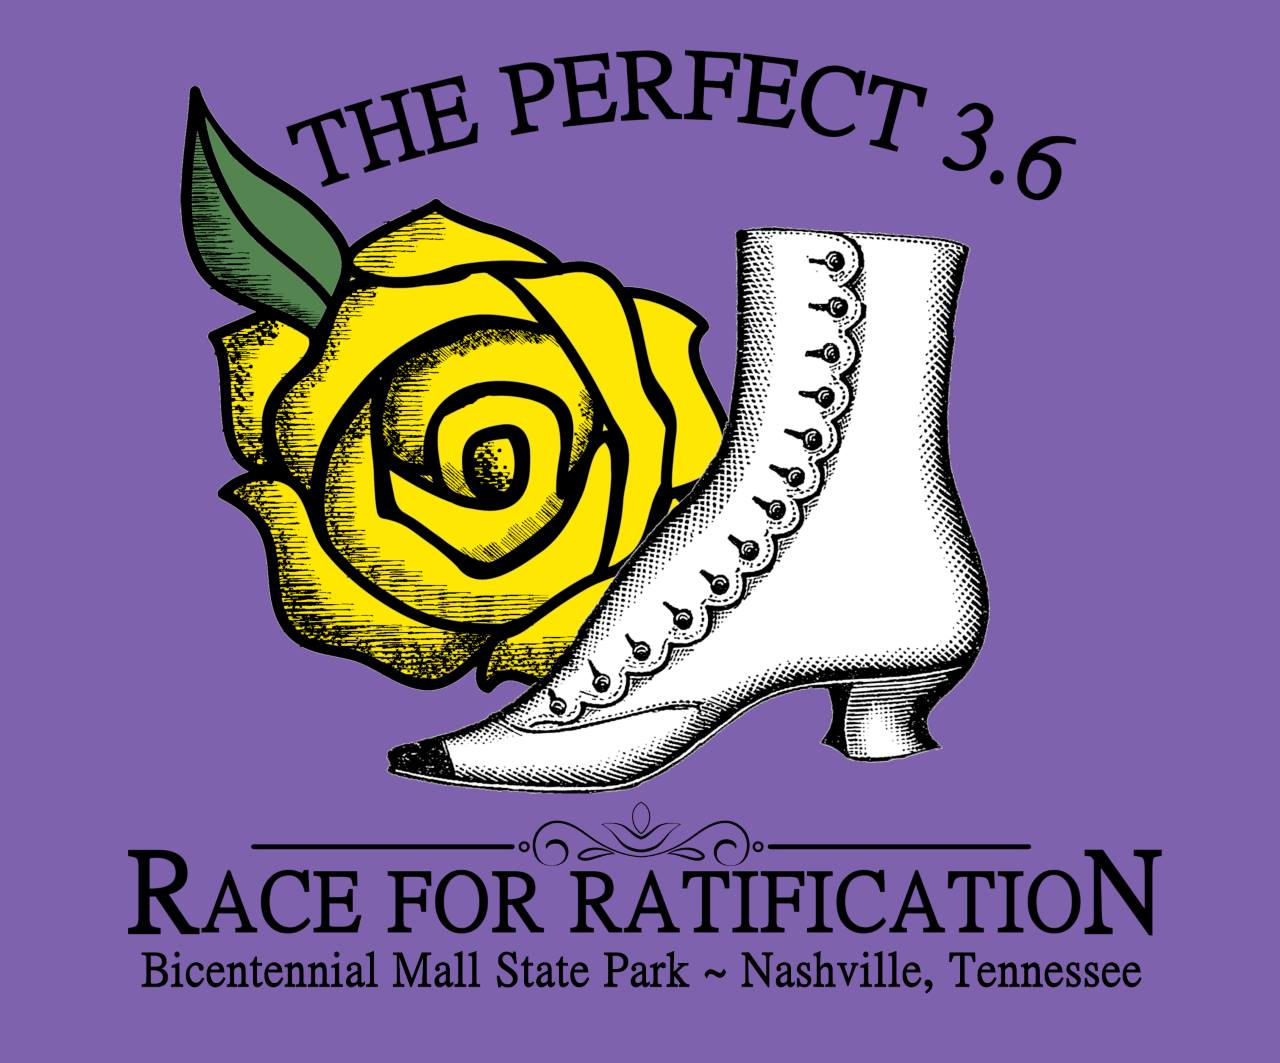 Tennessee commemorates ratification of women's suffrage